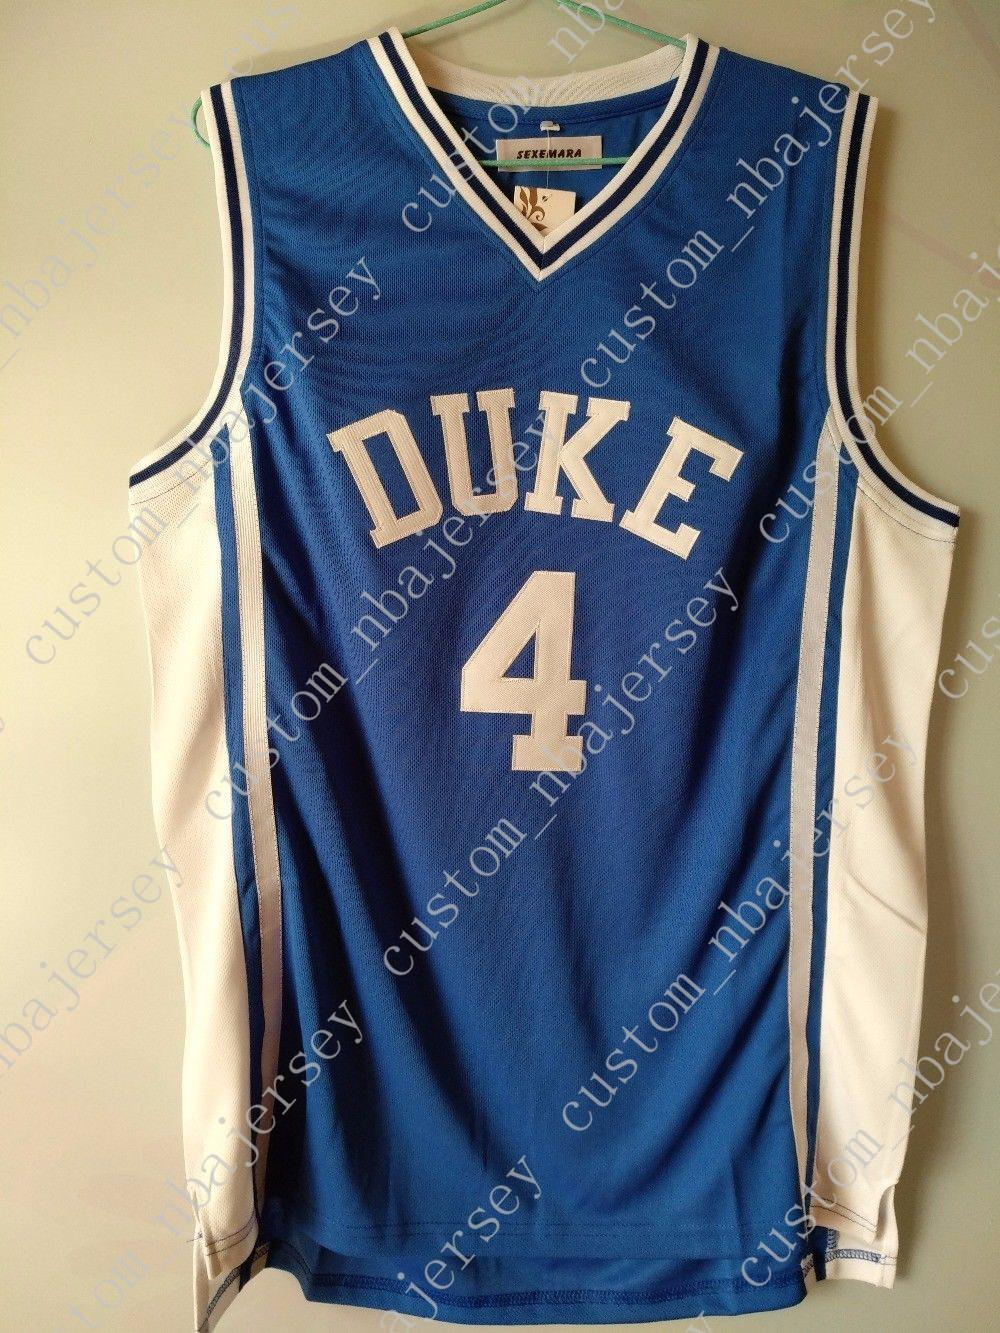 newest fa48d 1cbc0 Cheap custom #4 J.J Redick JJ Duke Blue Basketball Jerseys Stitched  Customize any name number MEN WOMEN YOUTH JERSEY XS-5XL